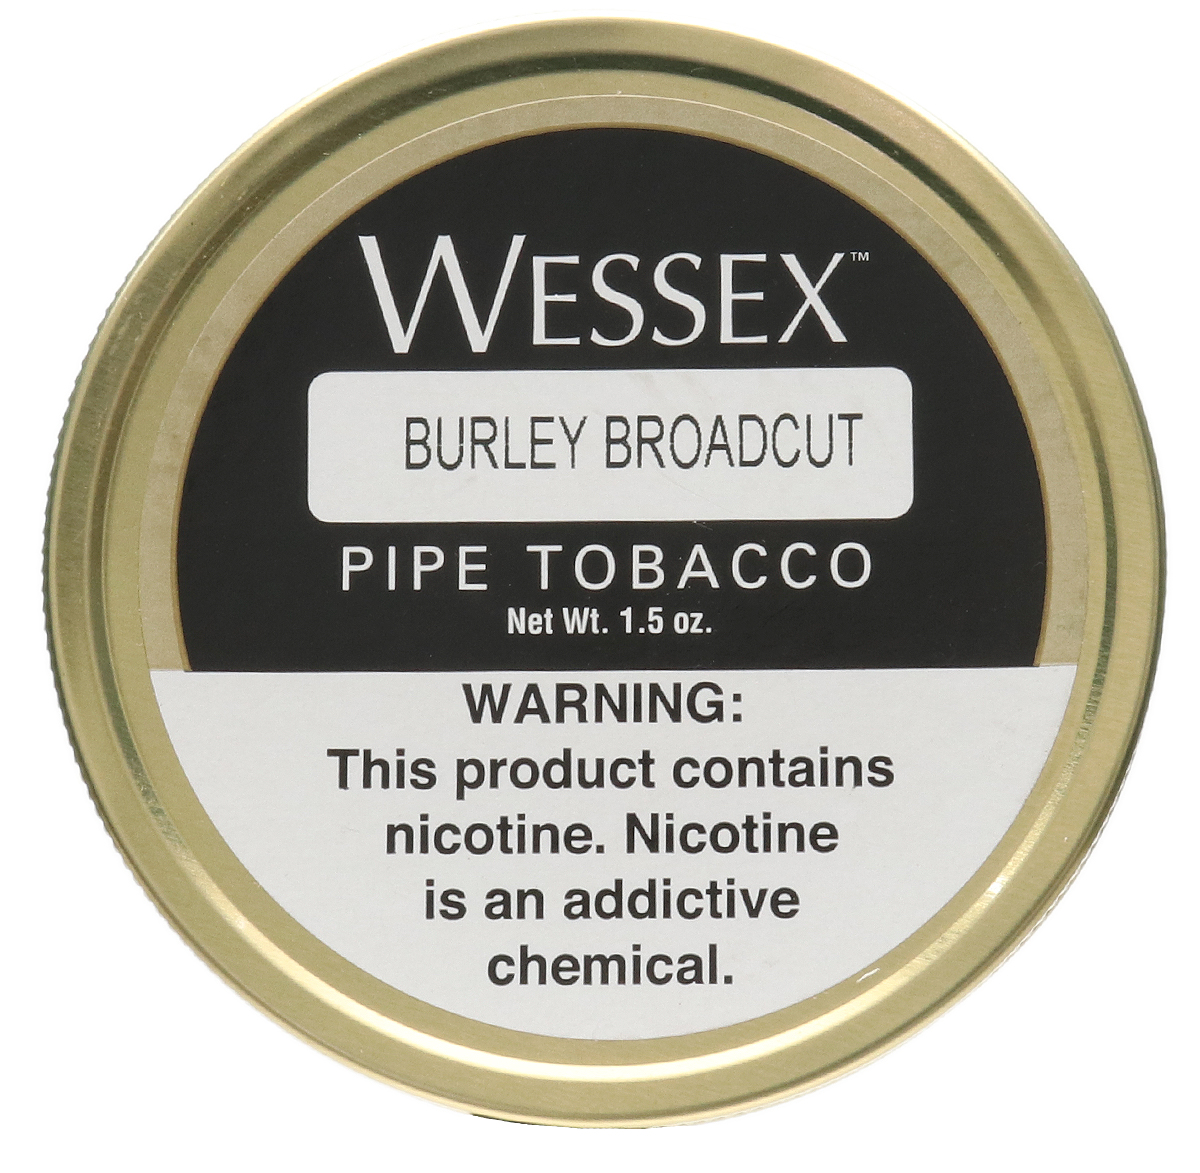 Wessex Burley Broadcut 1.5oz